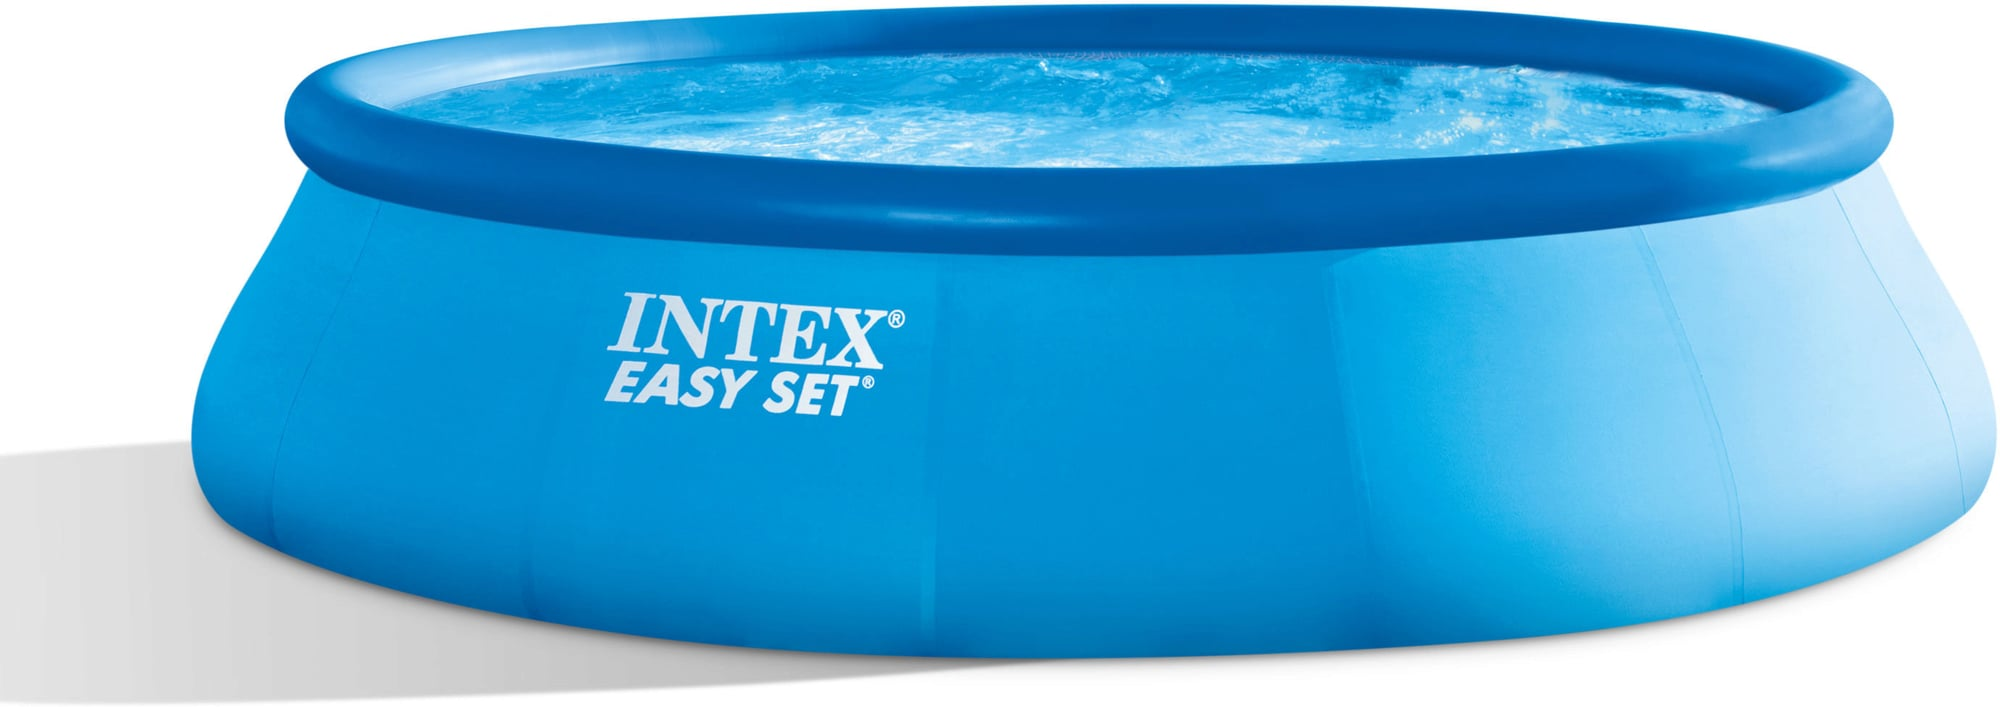 Intex Pool Abdeckplane Hält Nicht Intex Easy Pool Ø 366 X 76 Cm